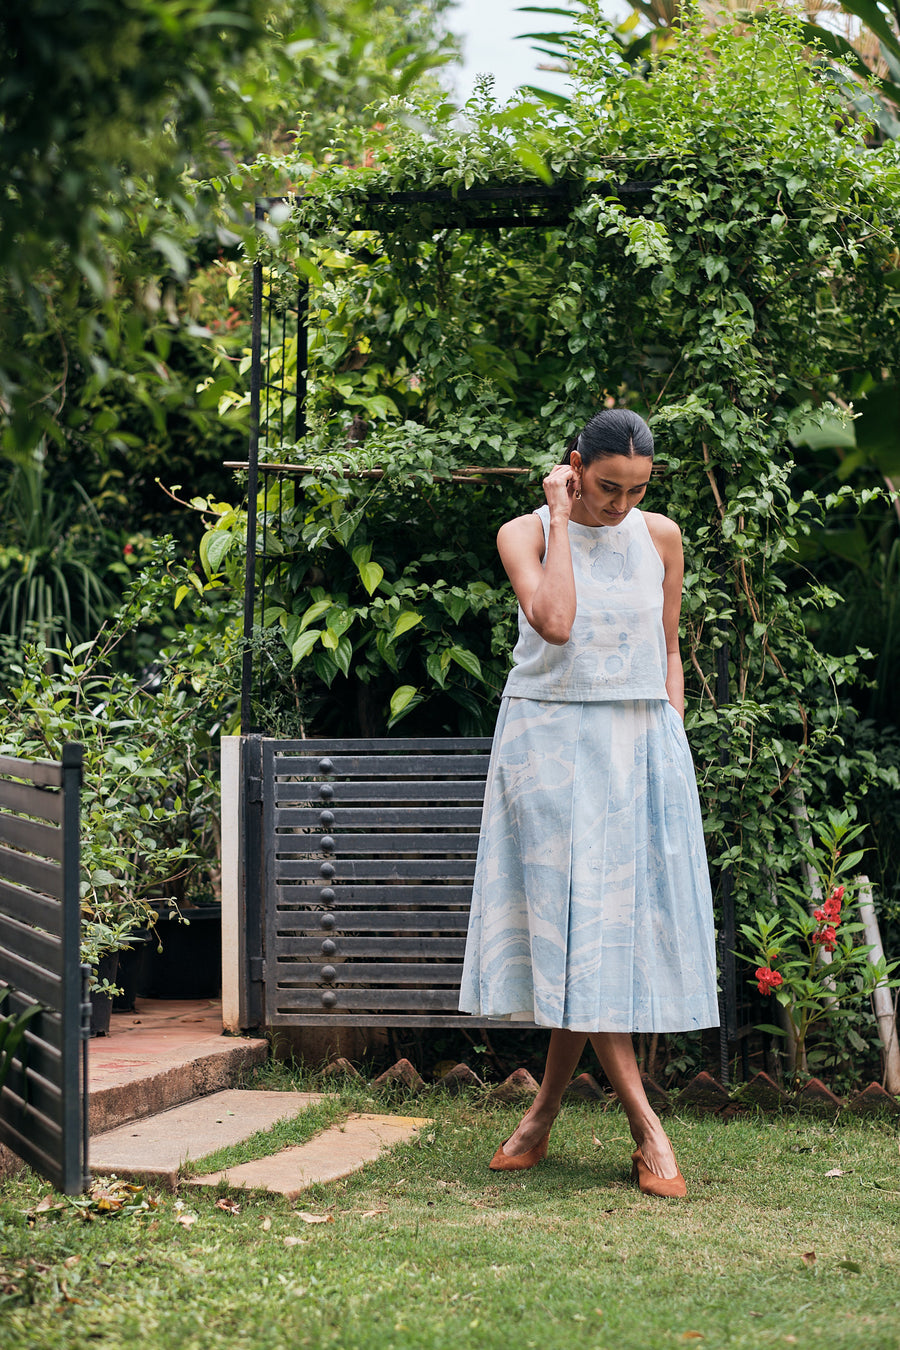 Clamentine Cotton Mul Skirt - Ethical made fashion - onlyethikal